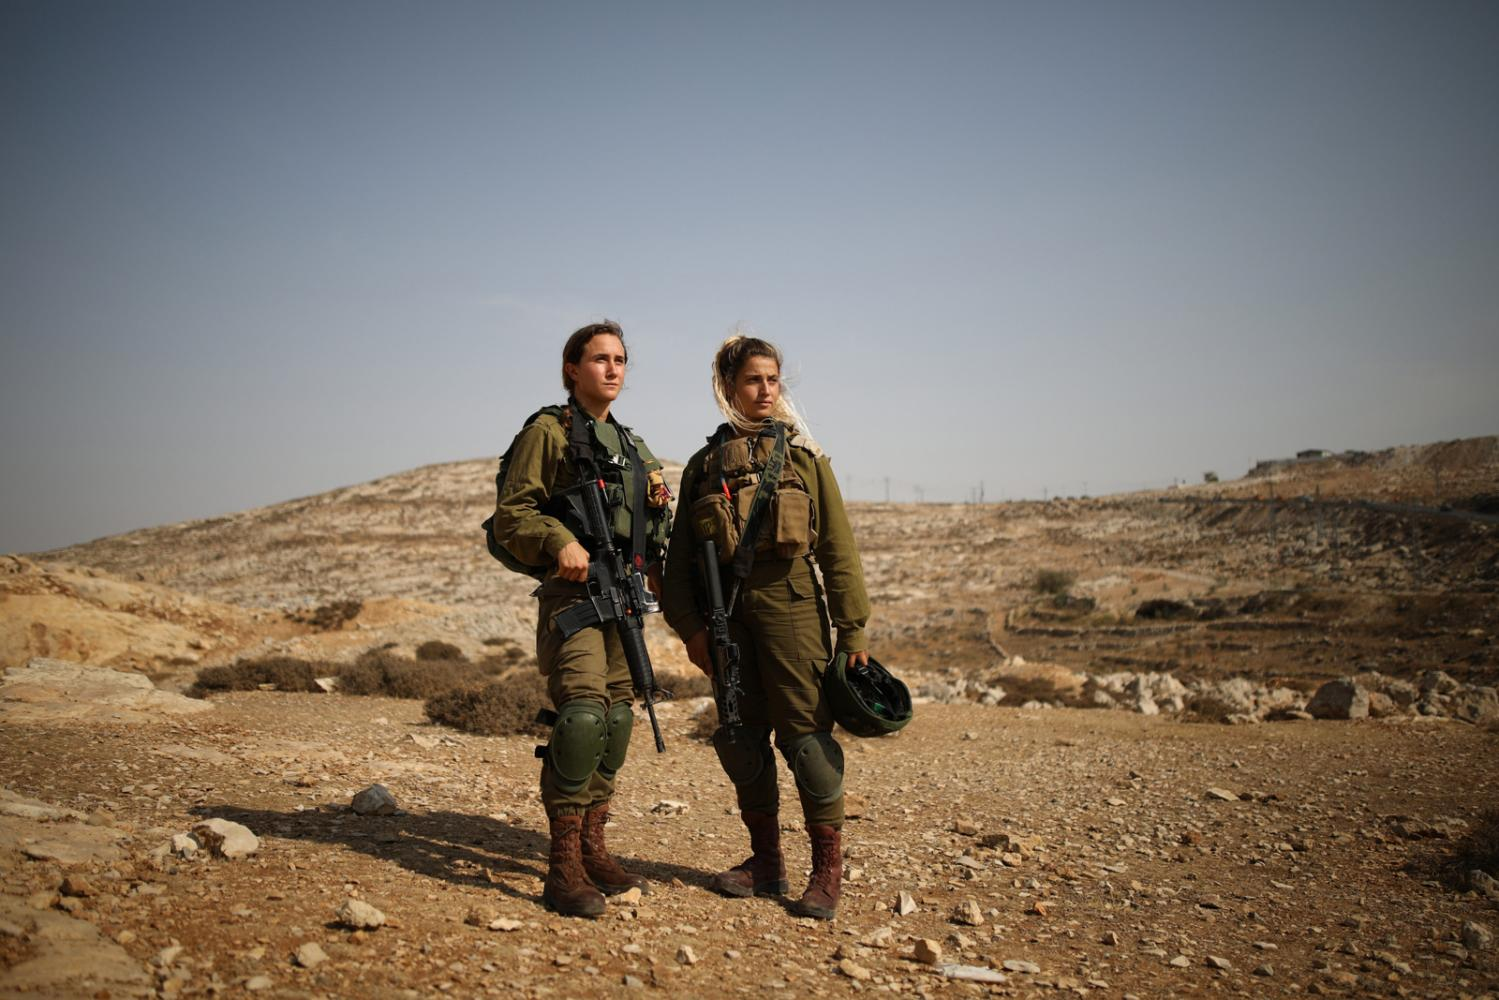 HIZMA, WEST BANK - OCTOBER 03, 2018: Portrait of Libby Zelikowitz (left), 23, 'lone soldier' from New York, and of Yaar Perlow (right), 21, Platoon commander, both soldiers of the Caracal Battalion, a mixed-gender infantry combat battalion of the IDF, near the Palestinian villages of Hizma and Atarot, West Bank. CREDIT: Corinna Kern for The New York Times